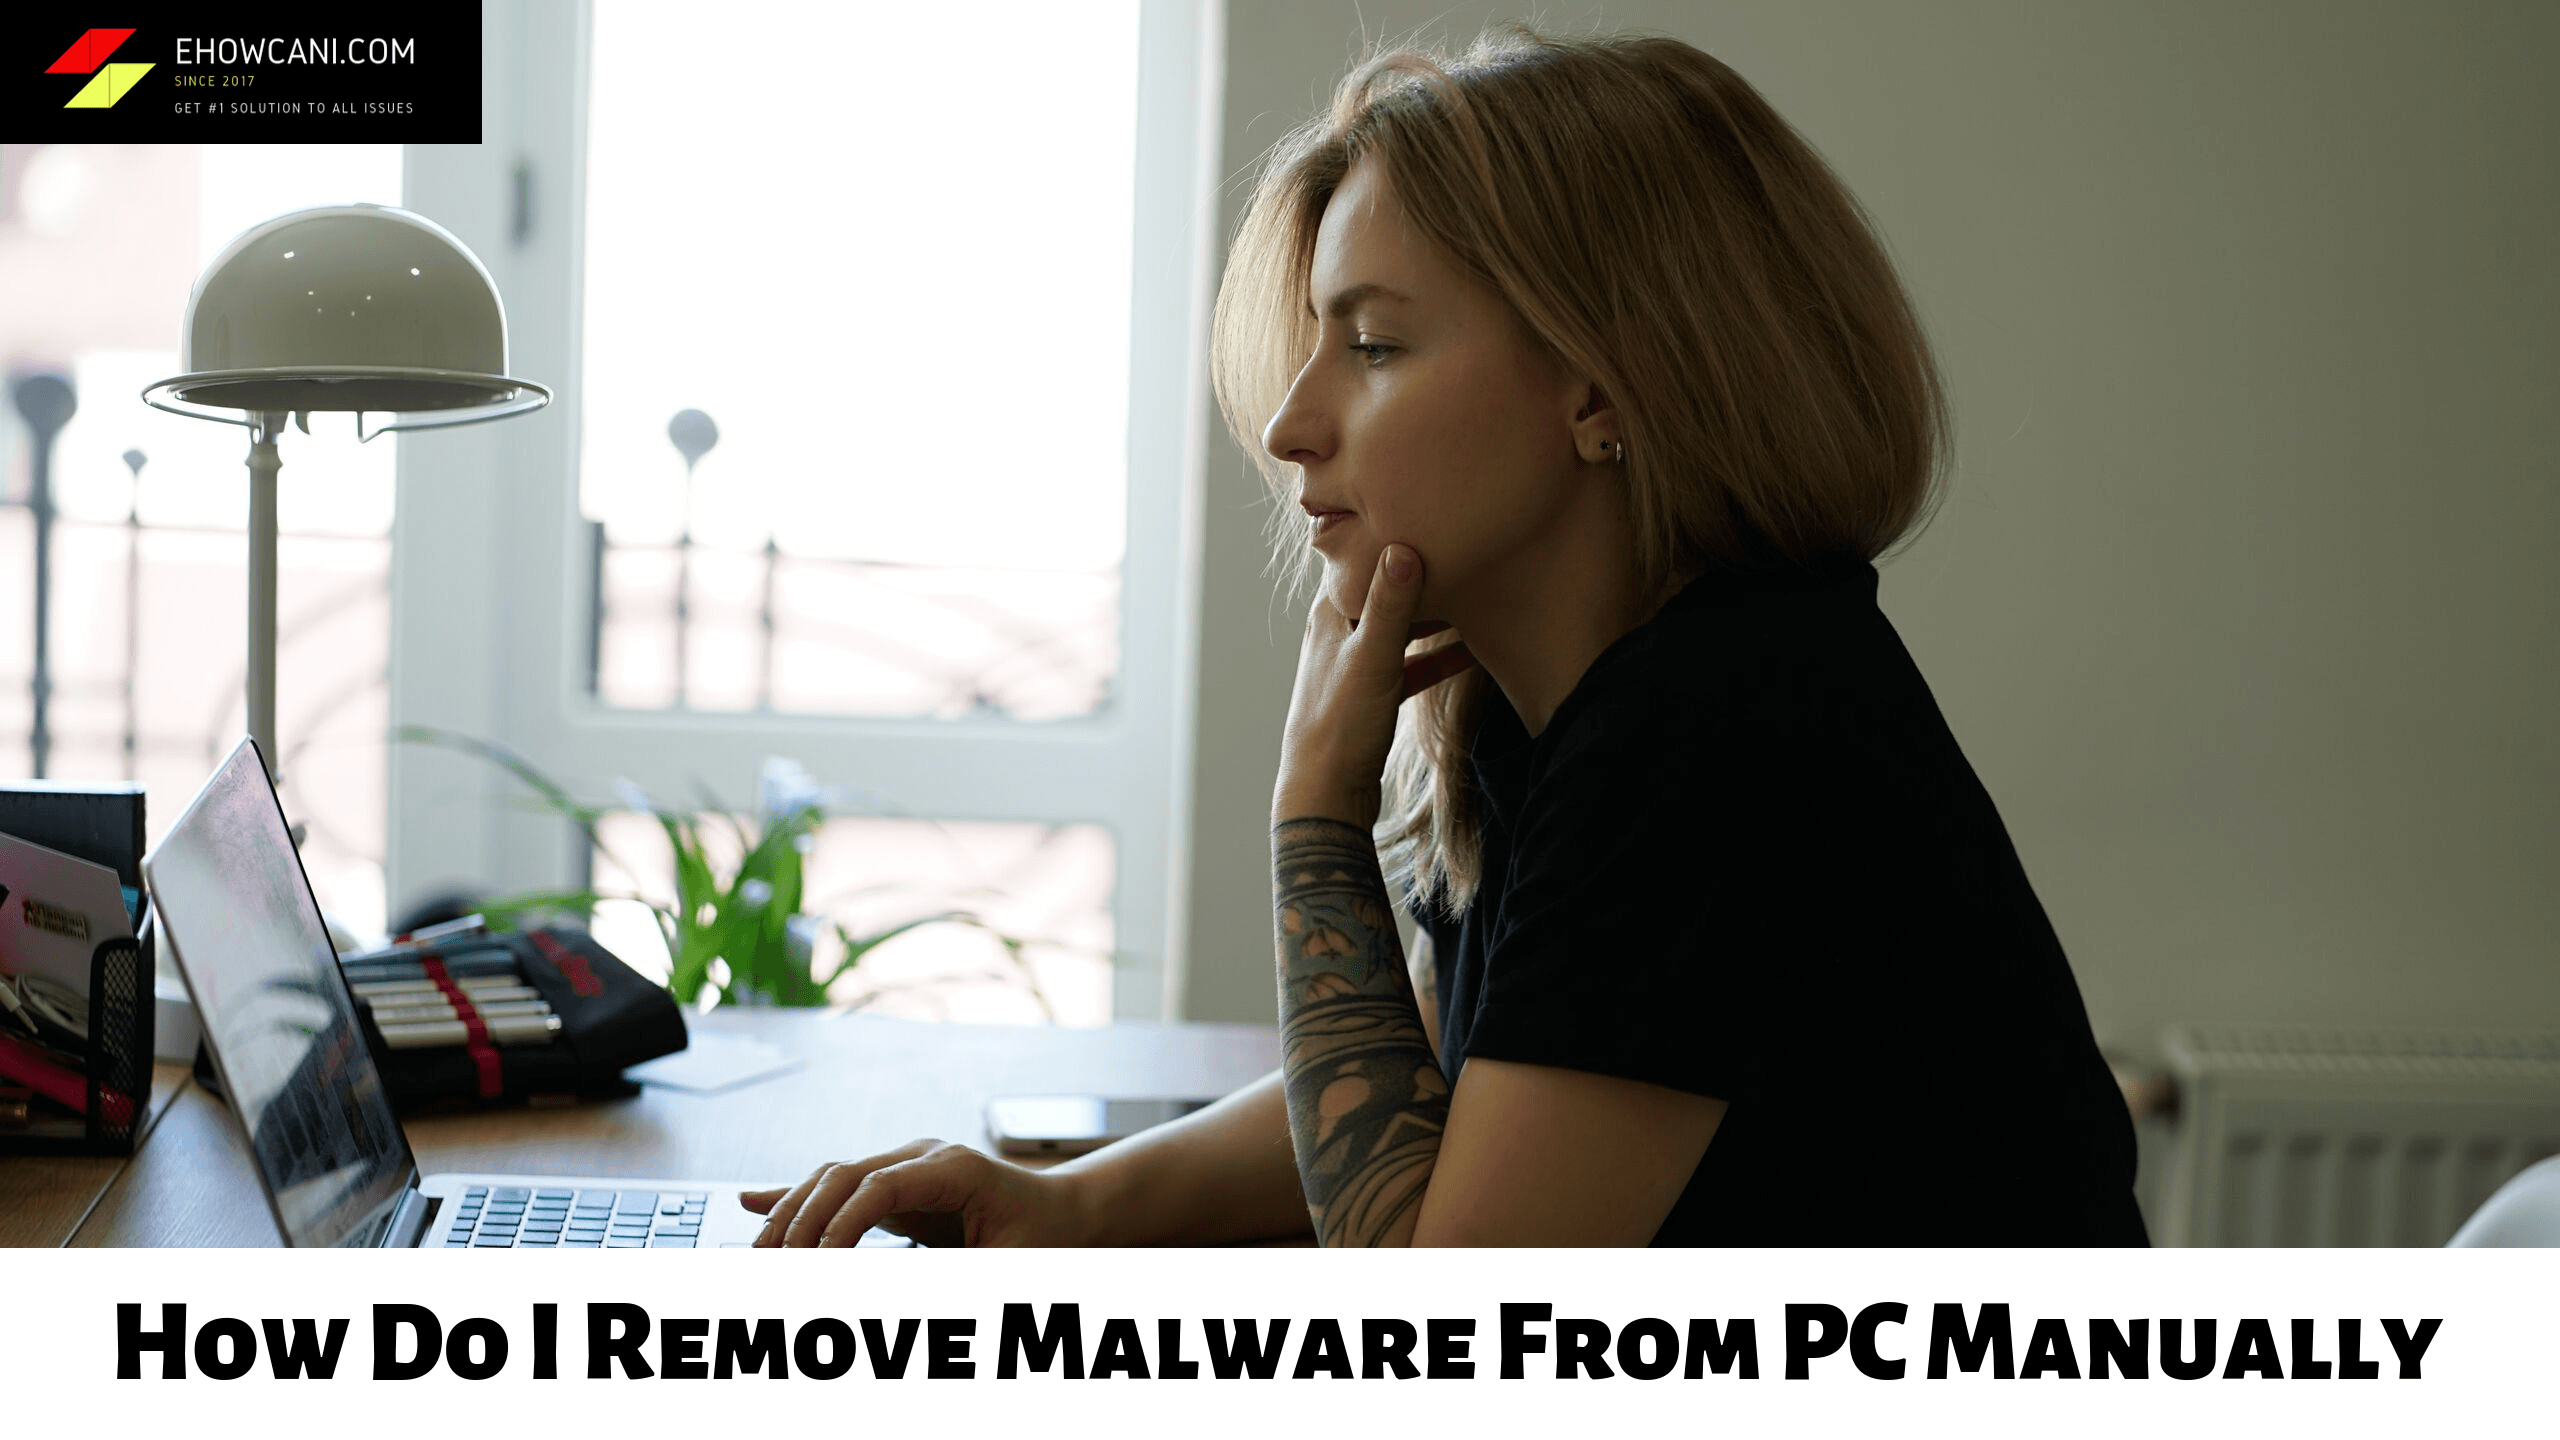 How Do I Remove Malware From PC Manually